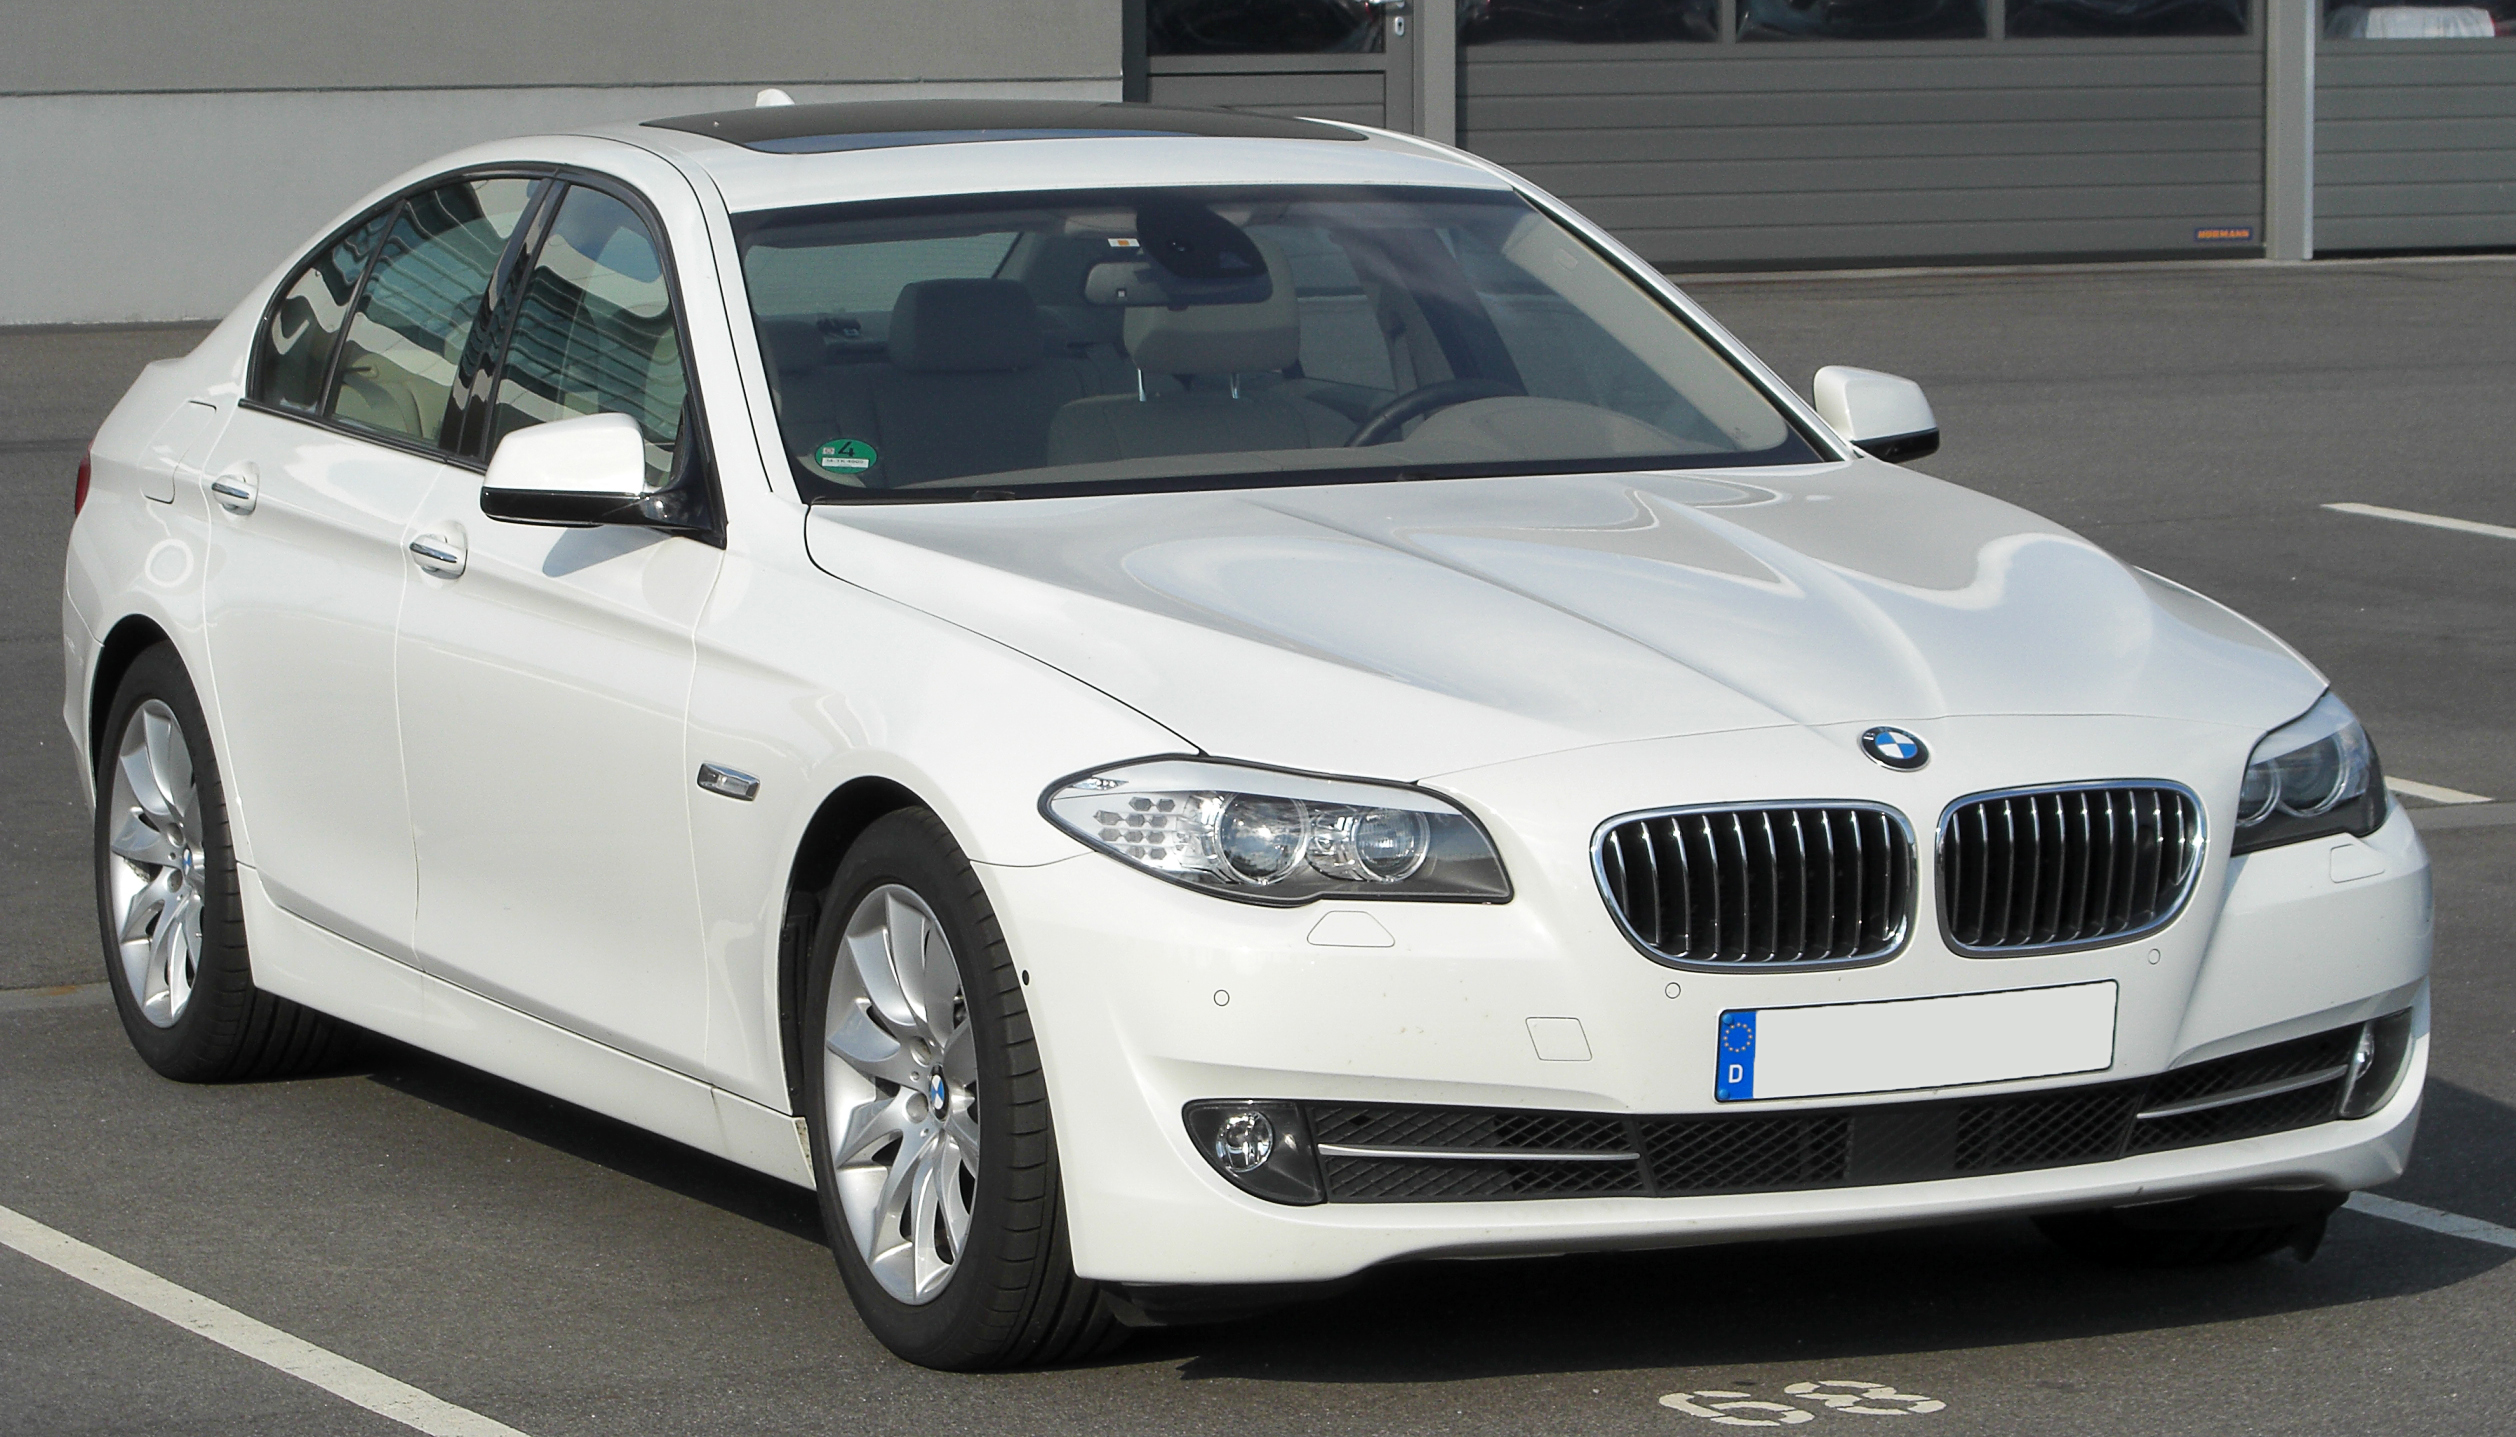 BMW 5 series 530i 2012 photo - 5